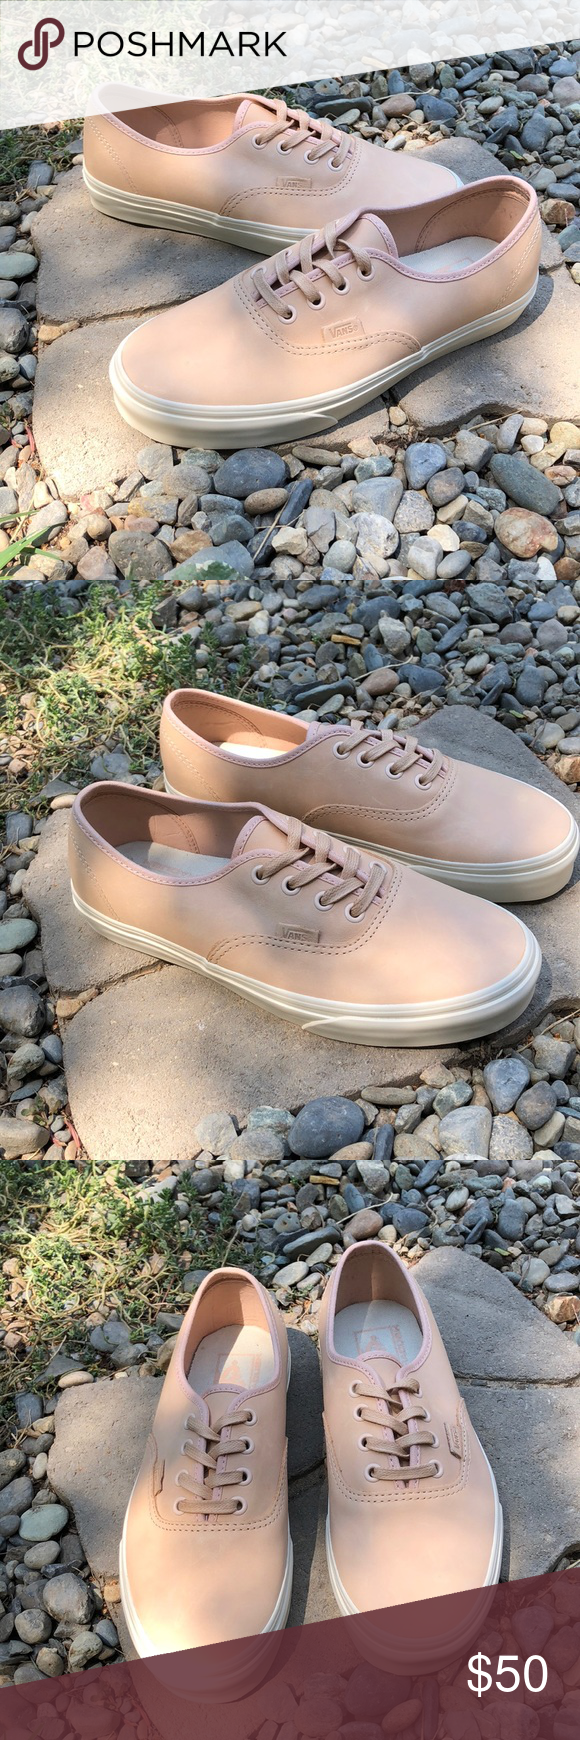 60b3aebb0d Vans Authentic DX Veggie Tan Leather Shoes Vans Authentic DX Veggie Tan  Leather Shoes New with tag Women s size  7.5 These great tan leather shoes  are the ...